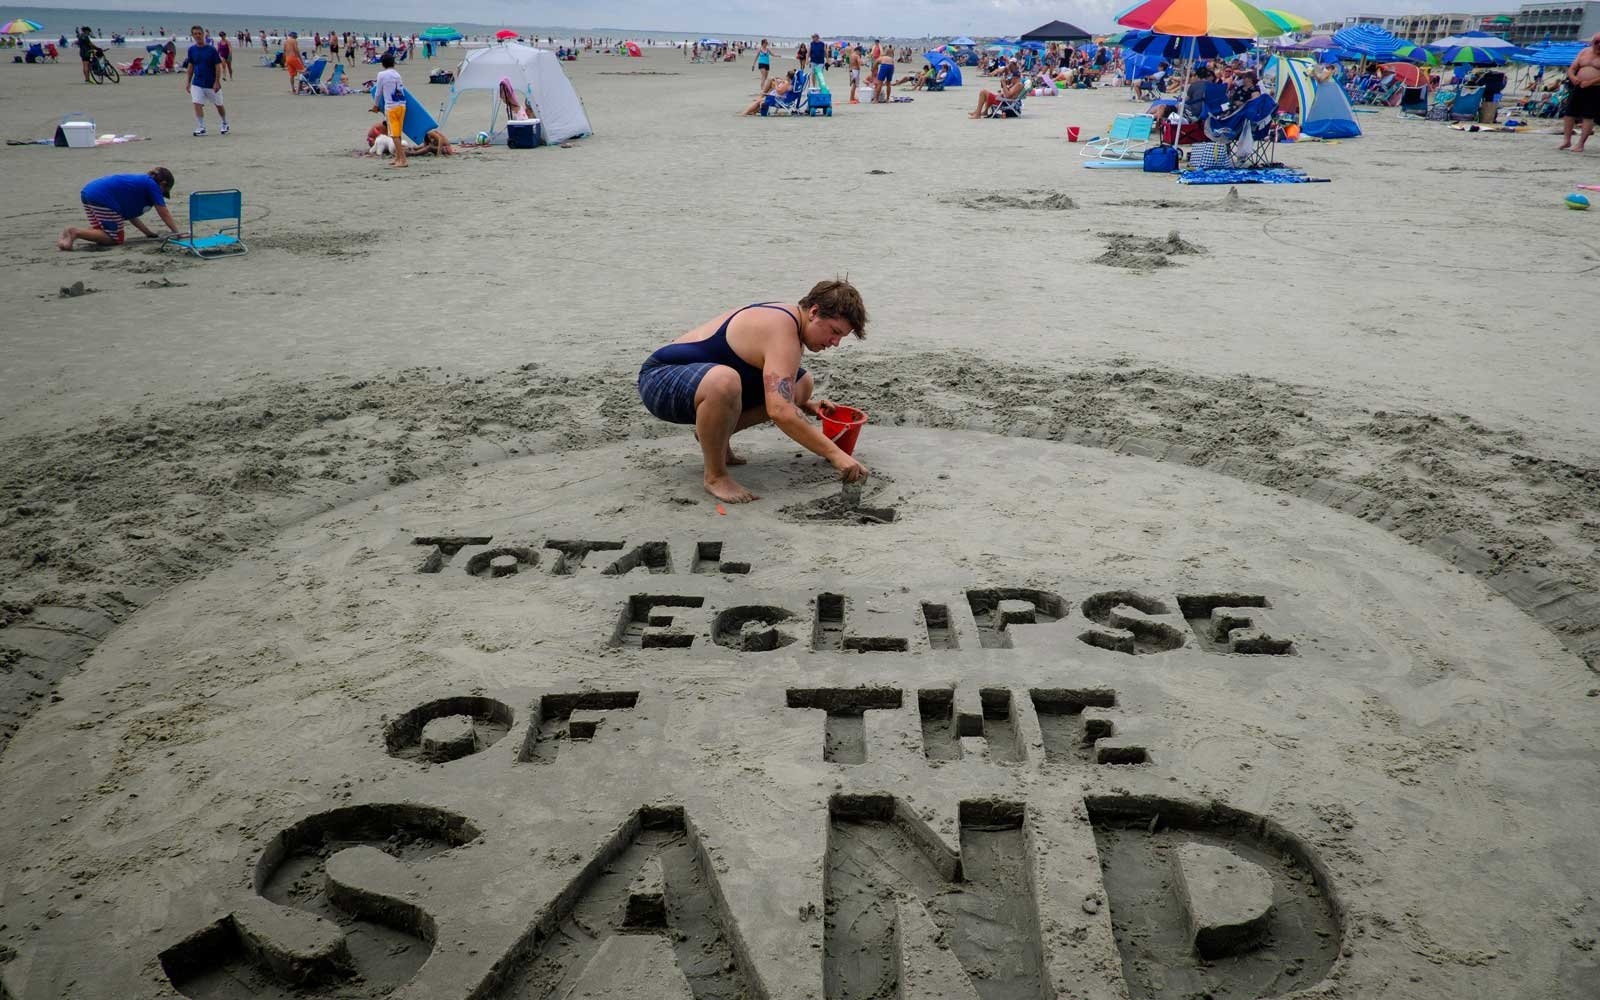 Total Eclipse of the Sand